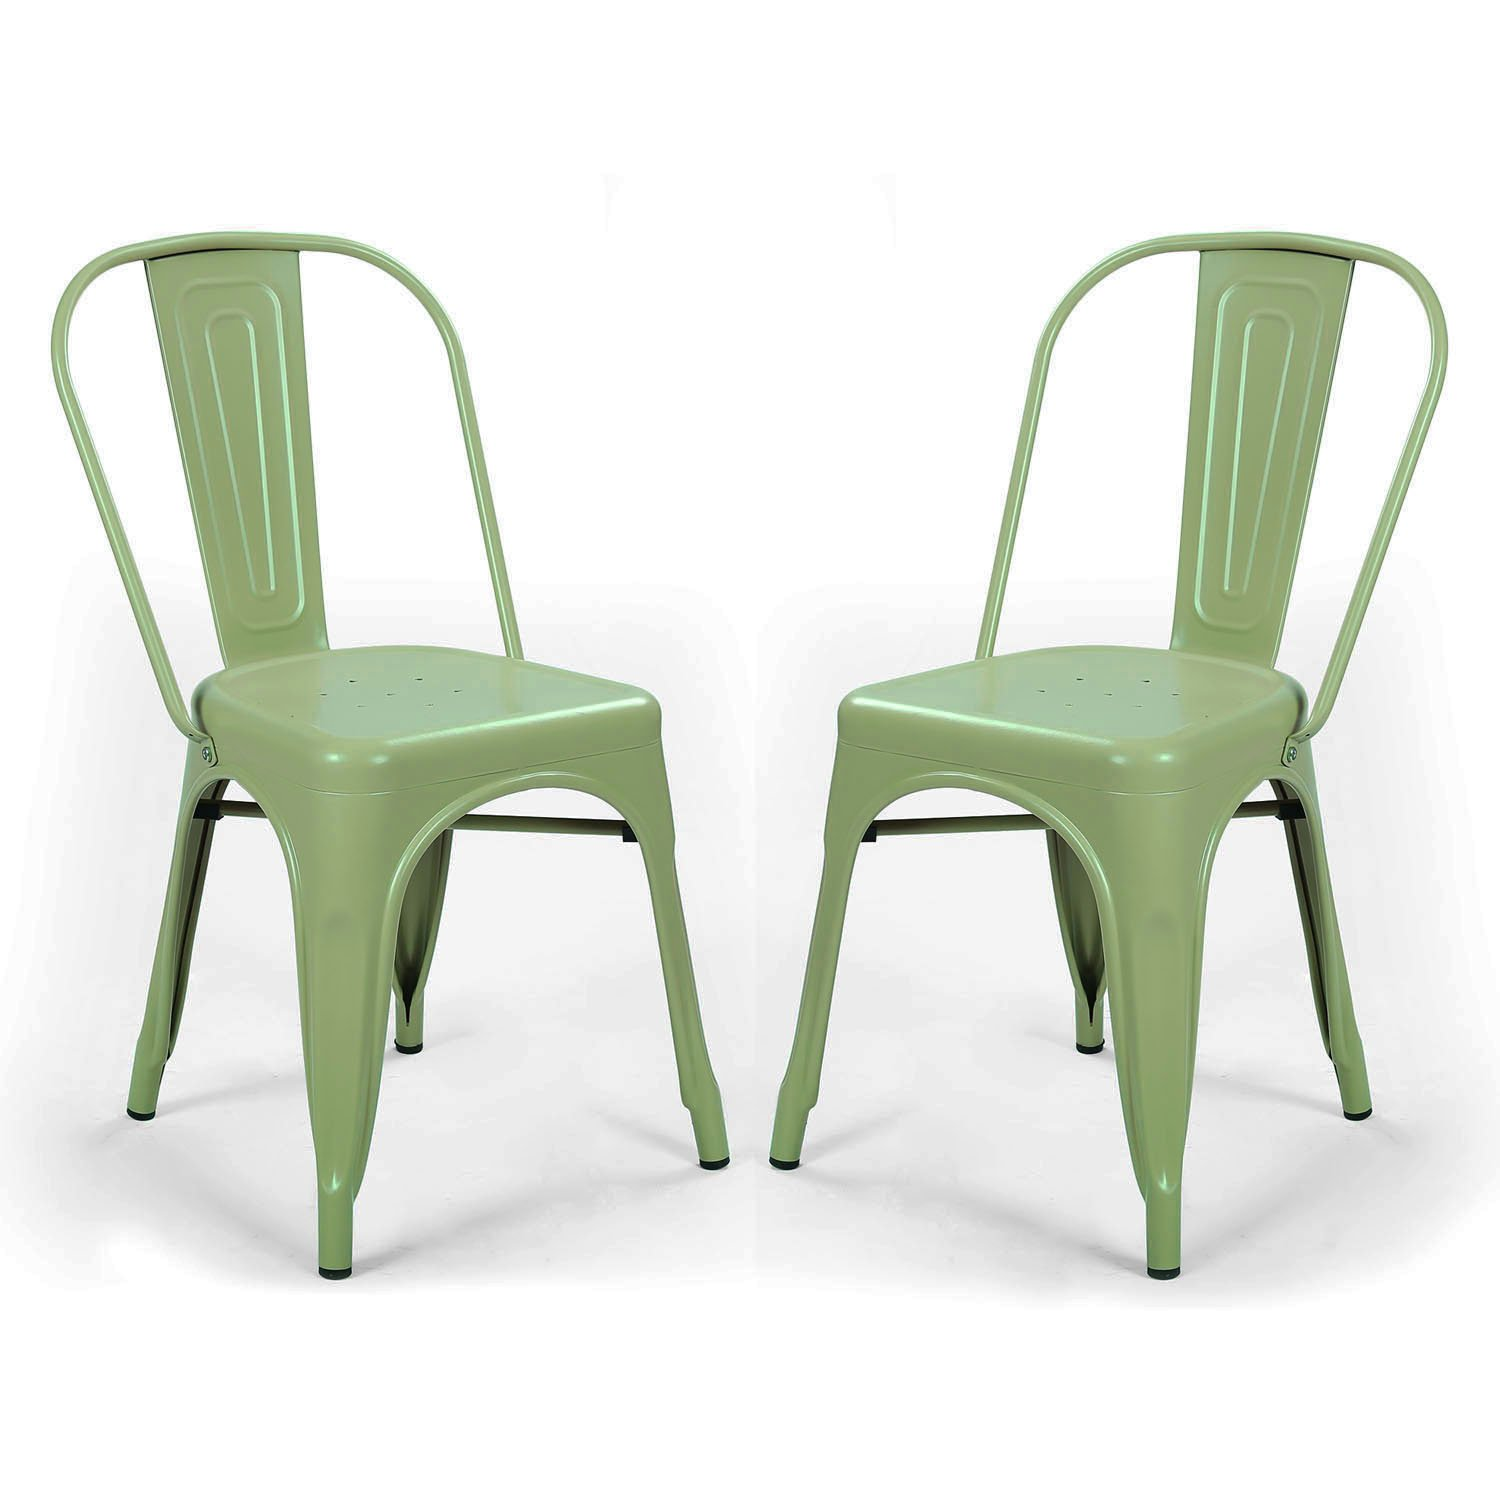 Adeco metal stackable industrial chic dining bistro cafe side chairs - Adeco Metal Stackable Industrial Chic Dining Bistro Cafe Side Chairs Outdoor And Indoor Green Set Of 2